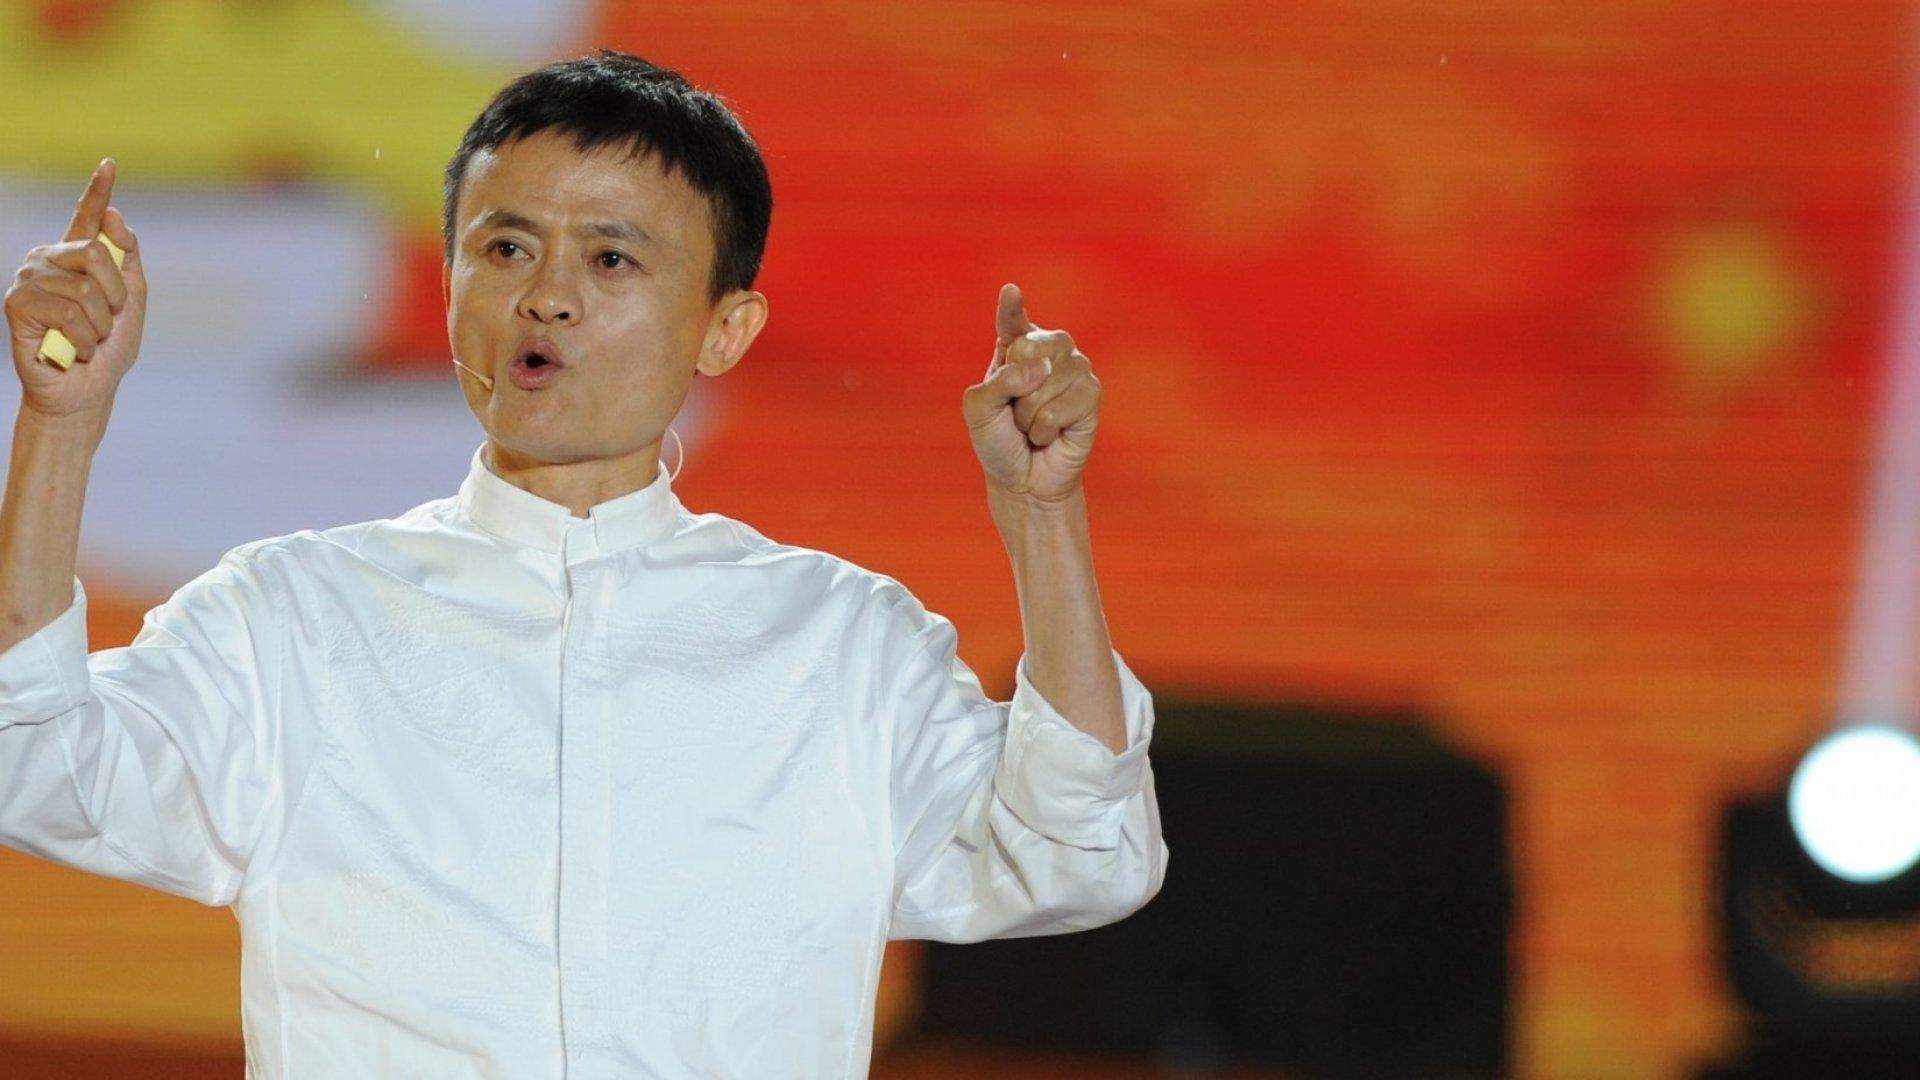 What You Can Learn From Alibaba's Battle With the Google of China